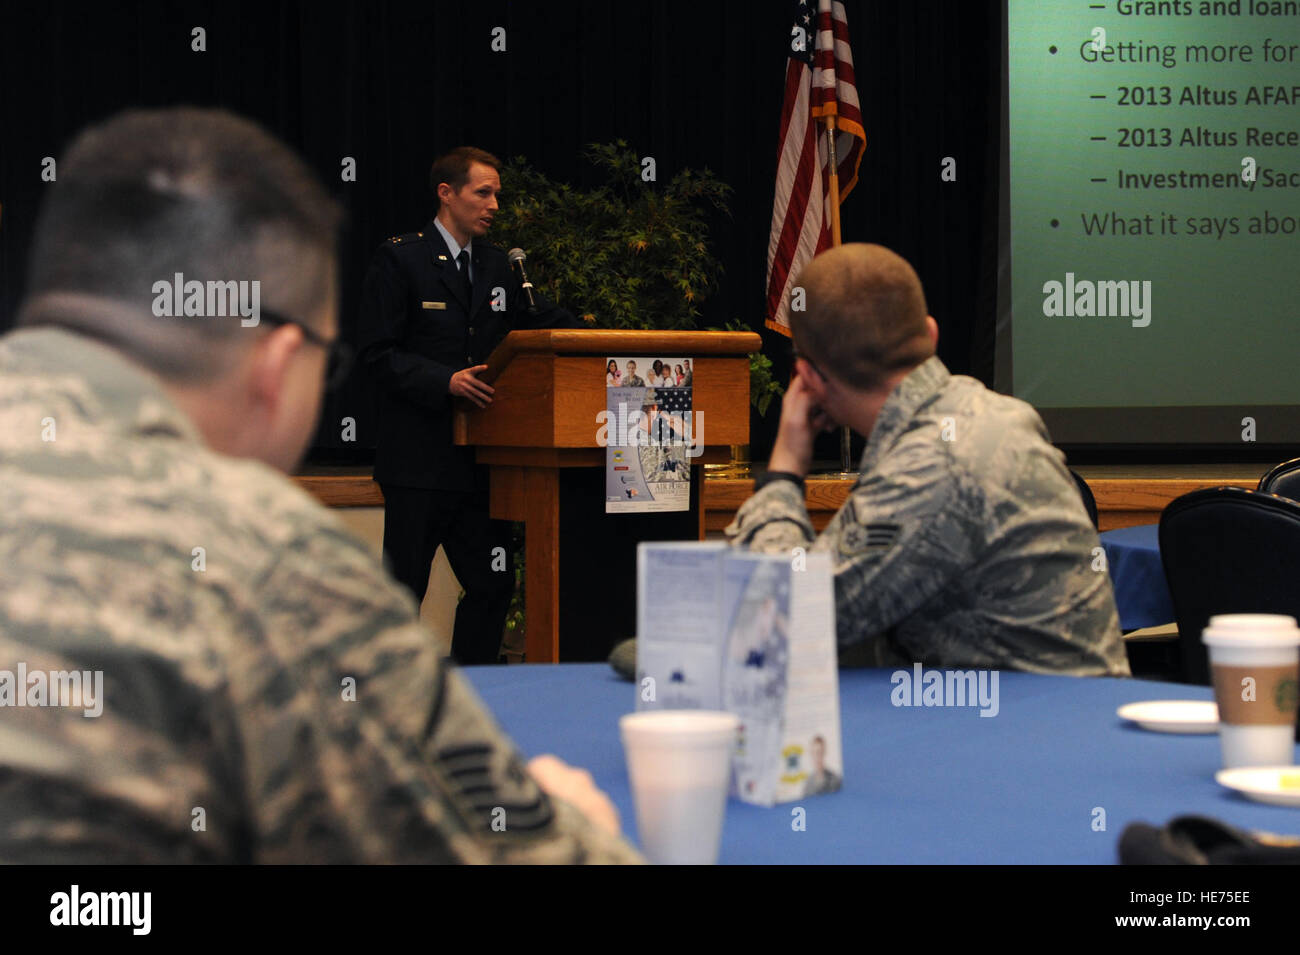 U.S. Air Force Capt. Mike Bunnell, Air Force Assistance Fund installation project officer, speaks with unit representatives - Stock Image